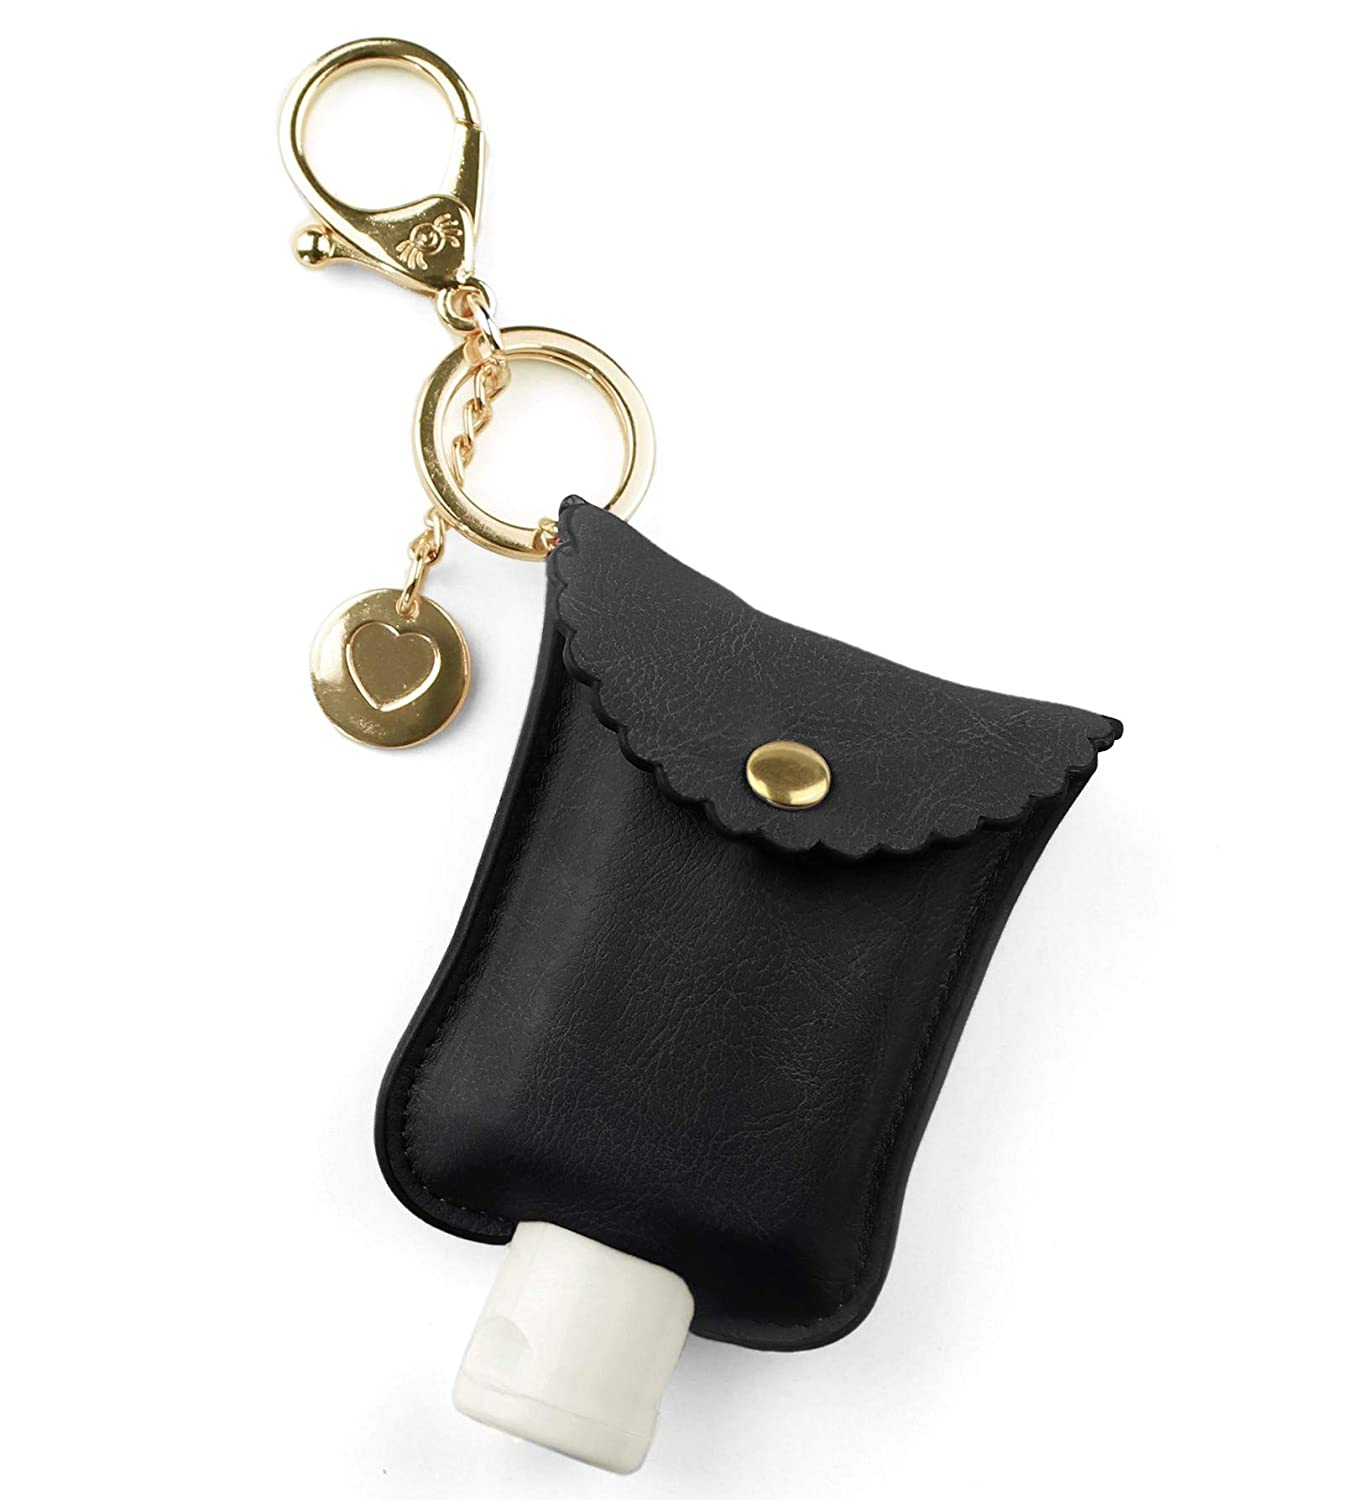 Itzy Ritzy Hand Sanitizer Holder; Fits 2-Ounce Bottles of Hand Sanitizer (Not Included); Clips to Diaper Bag, Purse or Travel Bag, Black